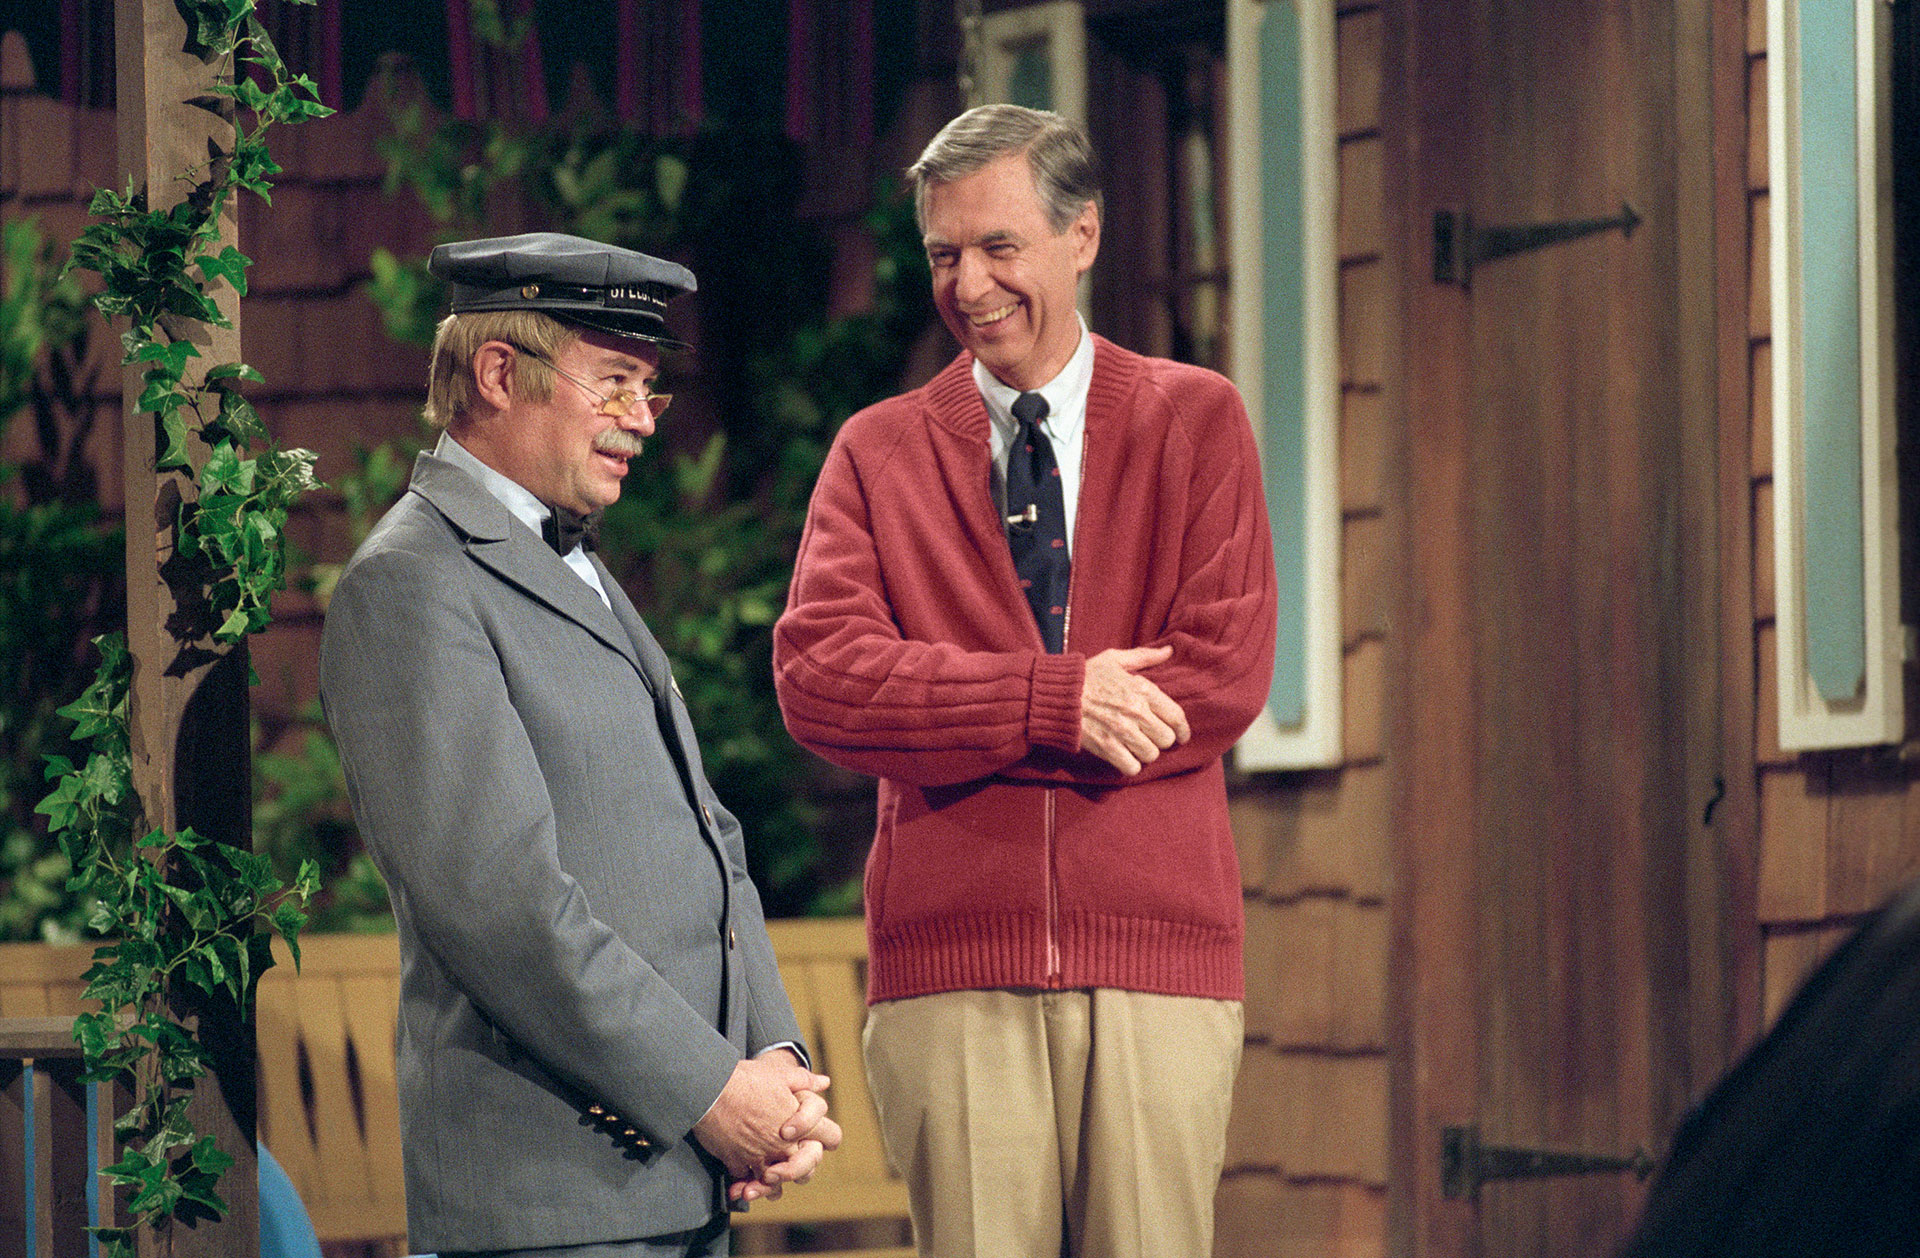 Mr Rogers and the delivery man in Mr Rogers Neighborhood